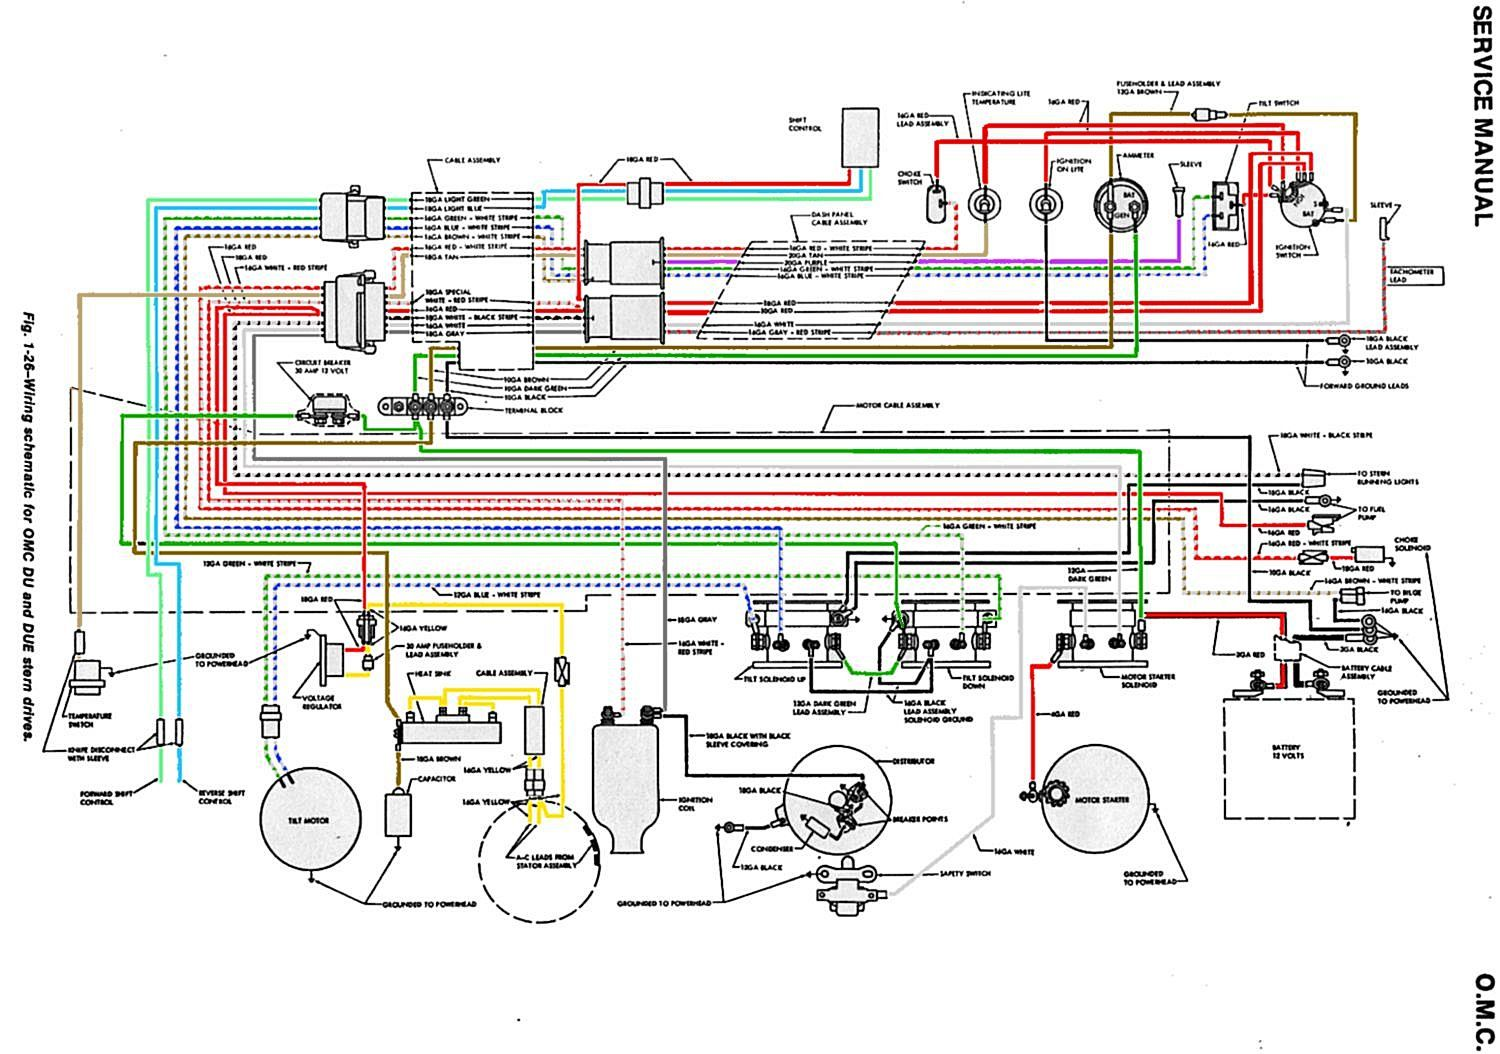 Omc Wiring Schematic - Wiring Diagram Online on 1985 40 hp wiring diagram, boat trim gauge wiring diagram, eric johnson stratocaster series wiring diagram, 1977 evinrude wiring diagram, switch wiring diagram, 1995 johnson outboard engine, johnson wiring harness diagram, fuel gauge wiring diagram, 25 hp johnson outboard diagram, mercury 1150 wiring diagram, lace sensor wiring diagram, 50 hp evinrude wiring diagram, 35 hp evinrude wiring diagram, johnson outboard motor diagram,